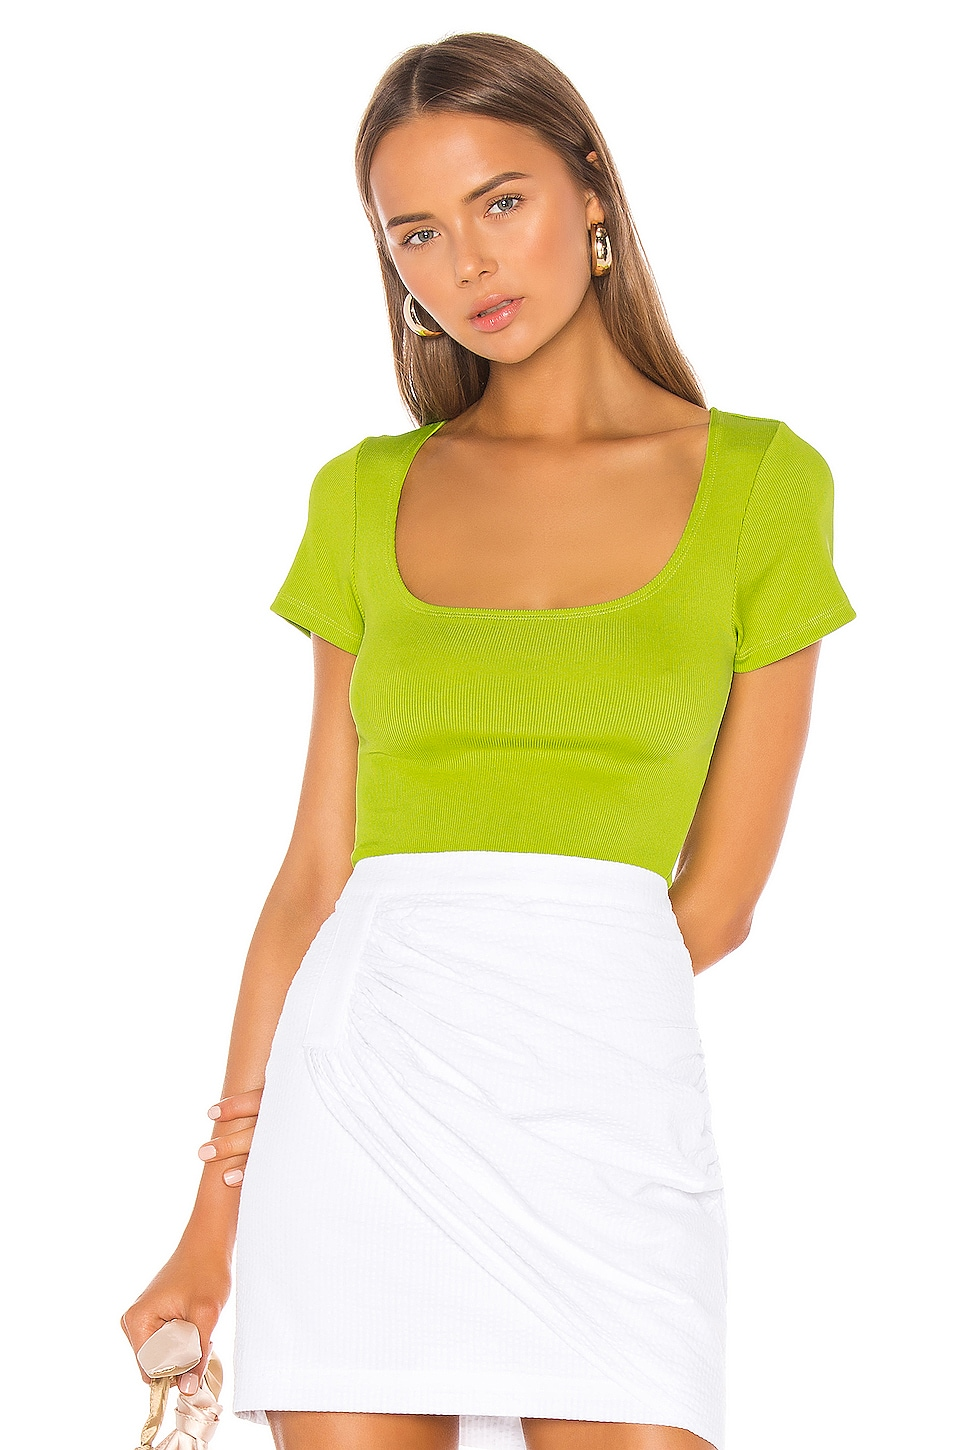 LPA Nerina Top in Lime Green